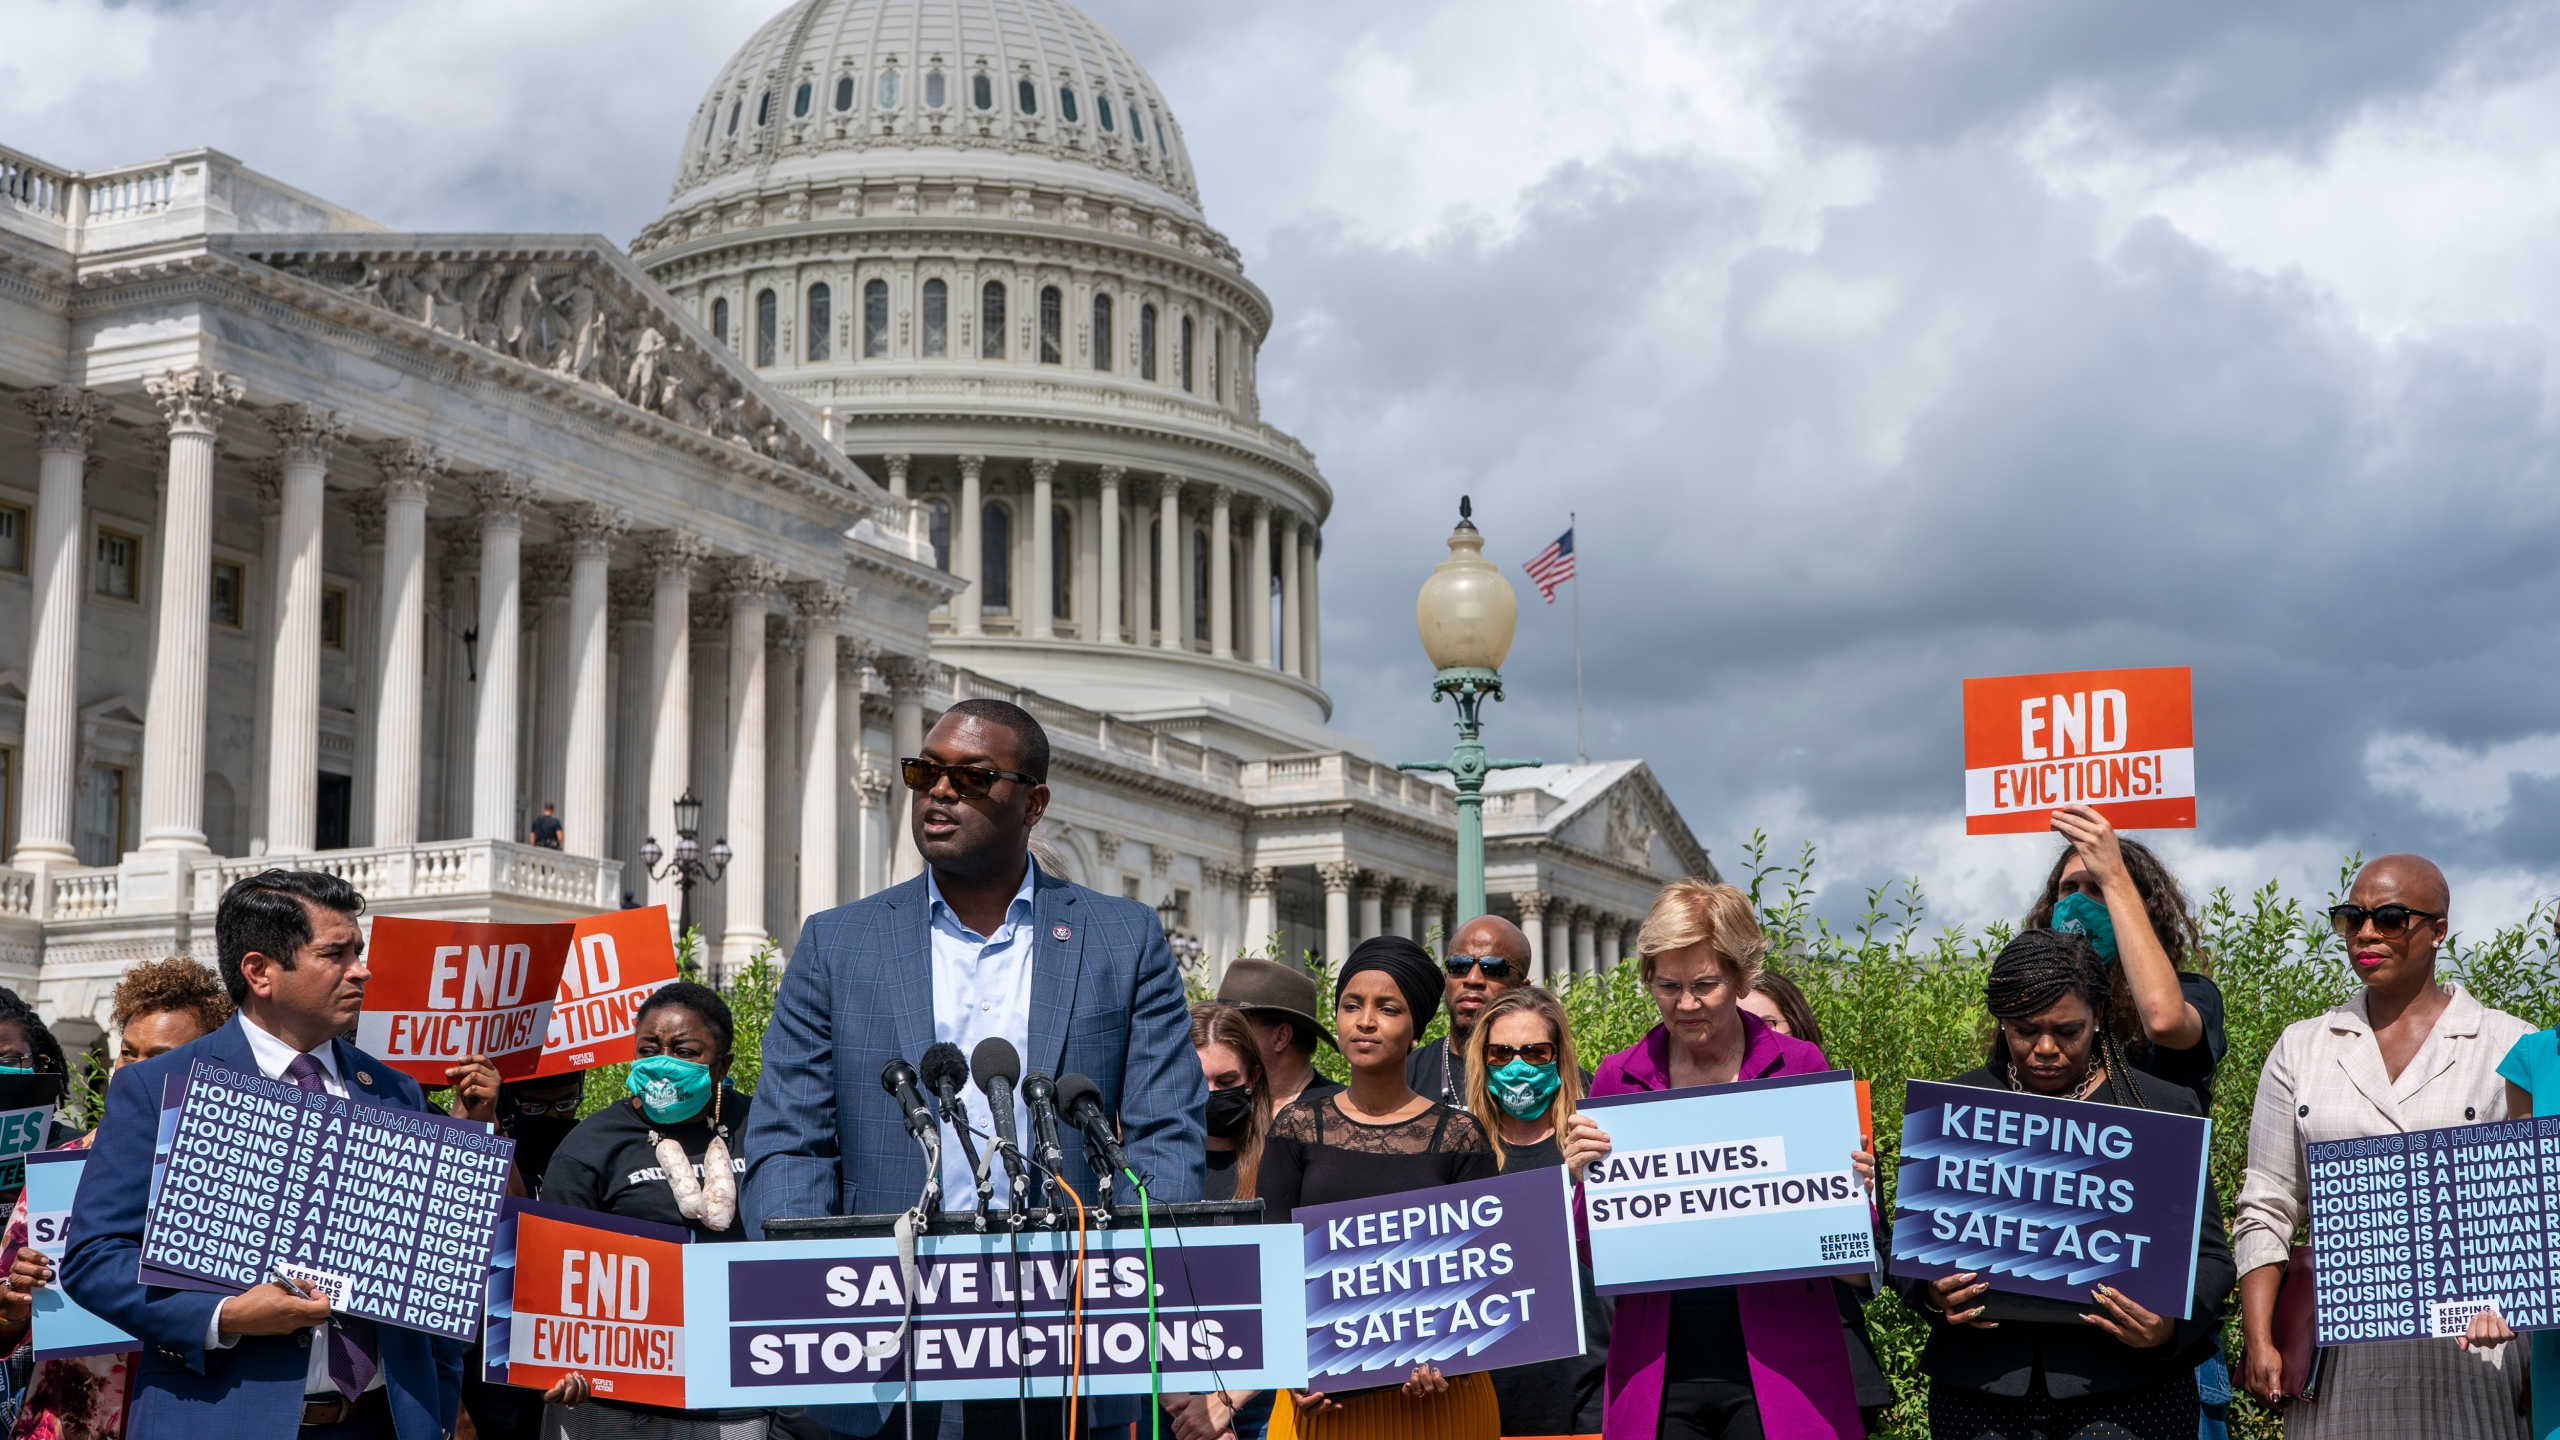 Rep. Mondaire Jones, D-N.Y., joins progressive lawmakers to advocate for reimposing a nationwide eviction moratorium that lapsed last month, at the Capitol in Washington, Tuesday, Sept. 21, 2021. (AP Photo/J. Scott Applewhite)